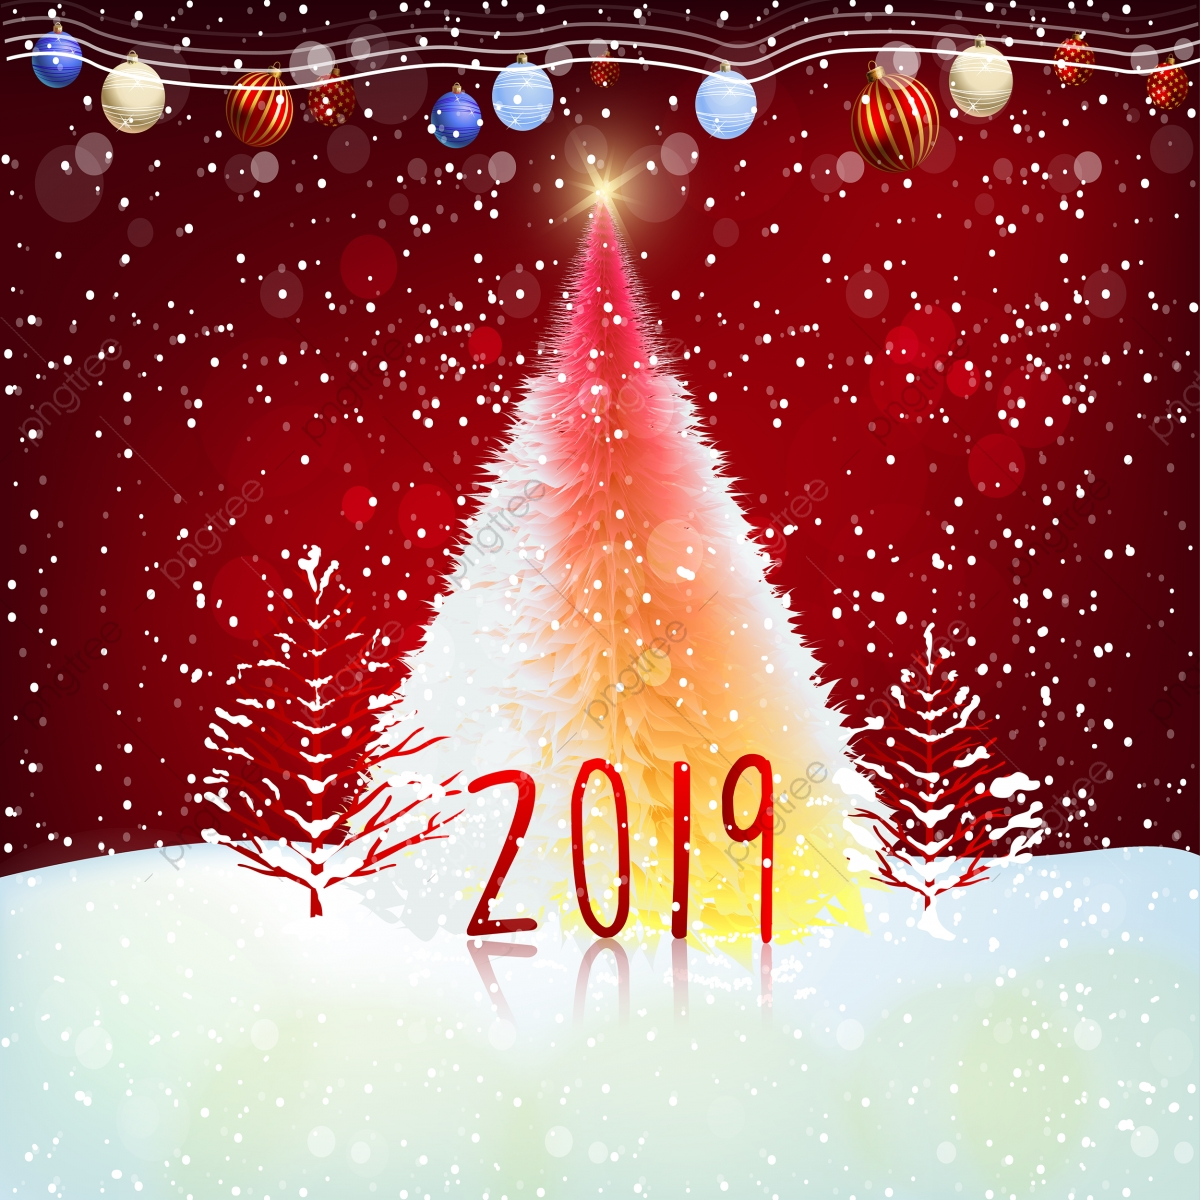 Mery Christmas.Happy New Year 2019 And Mery Christmas Chinese New Year